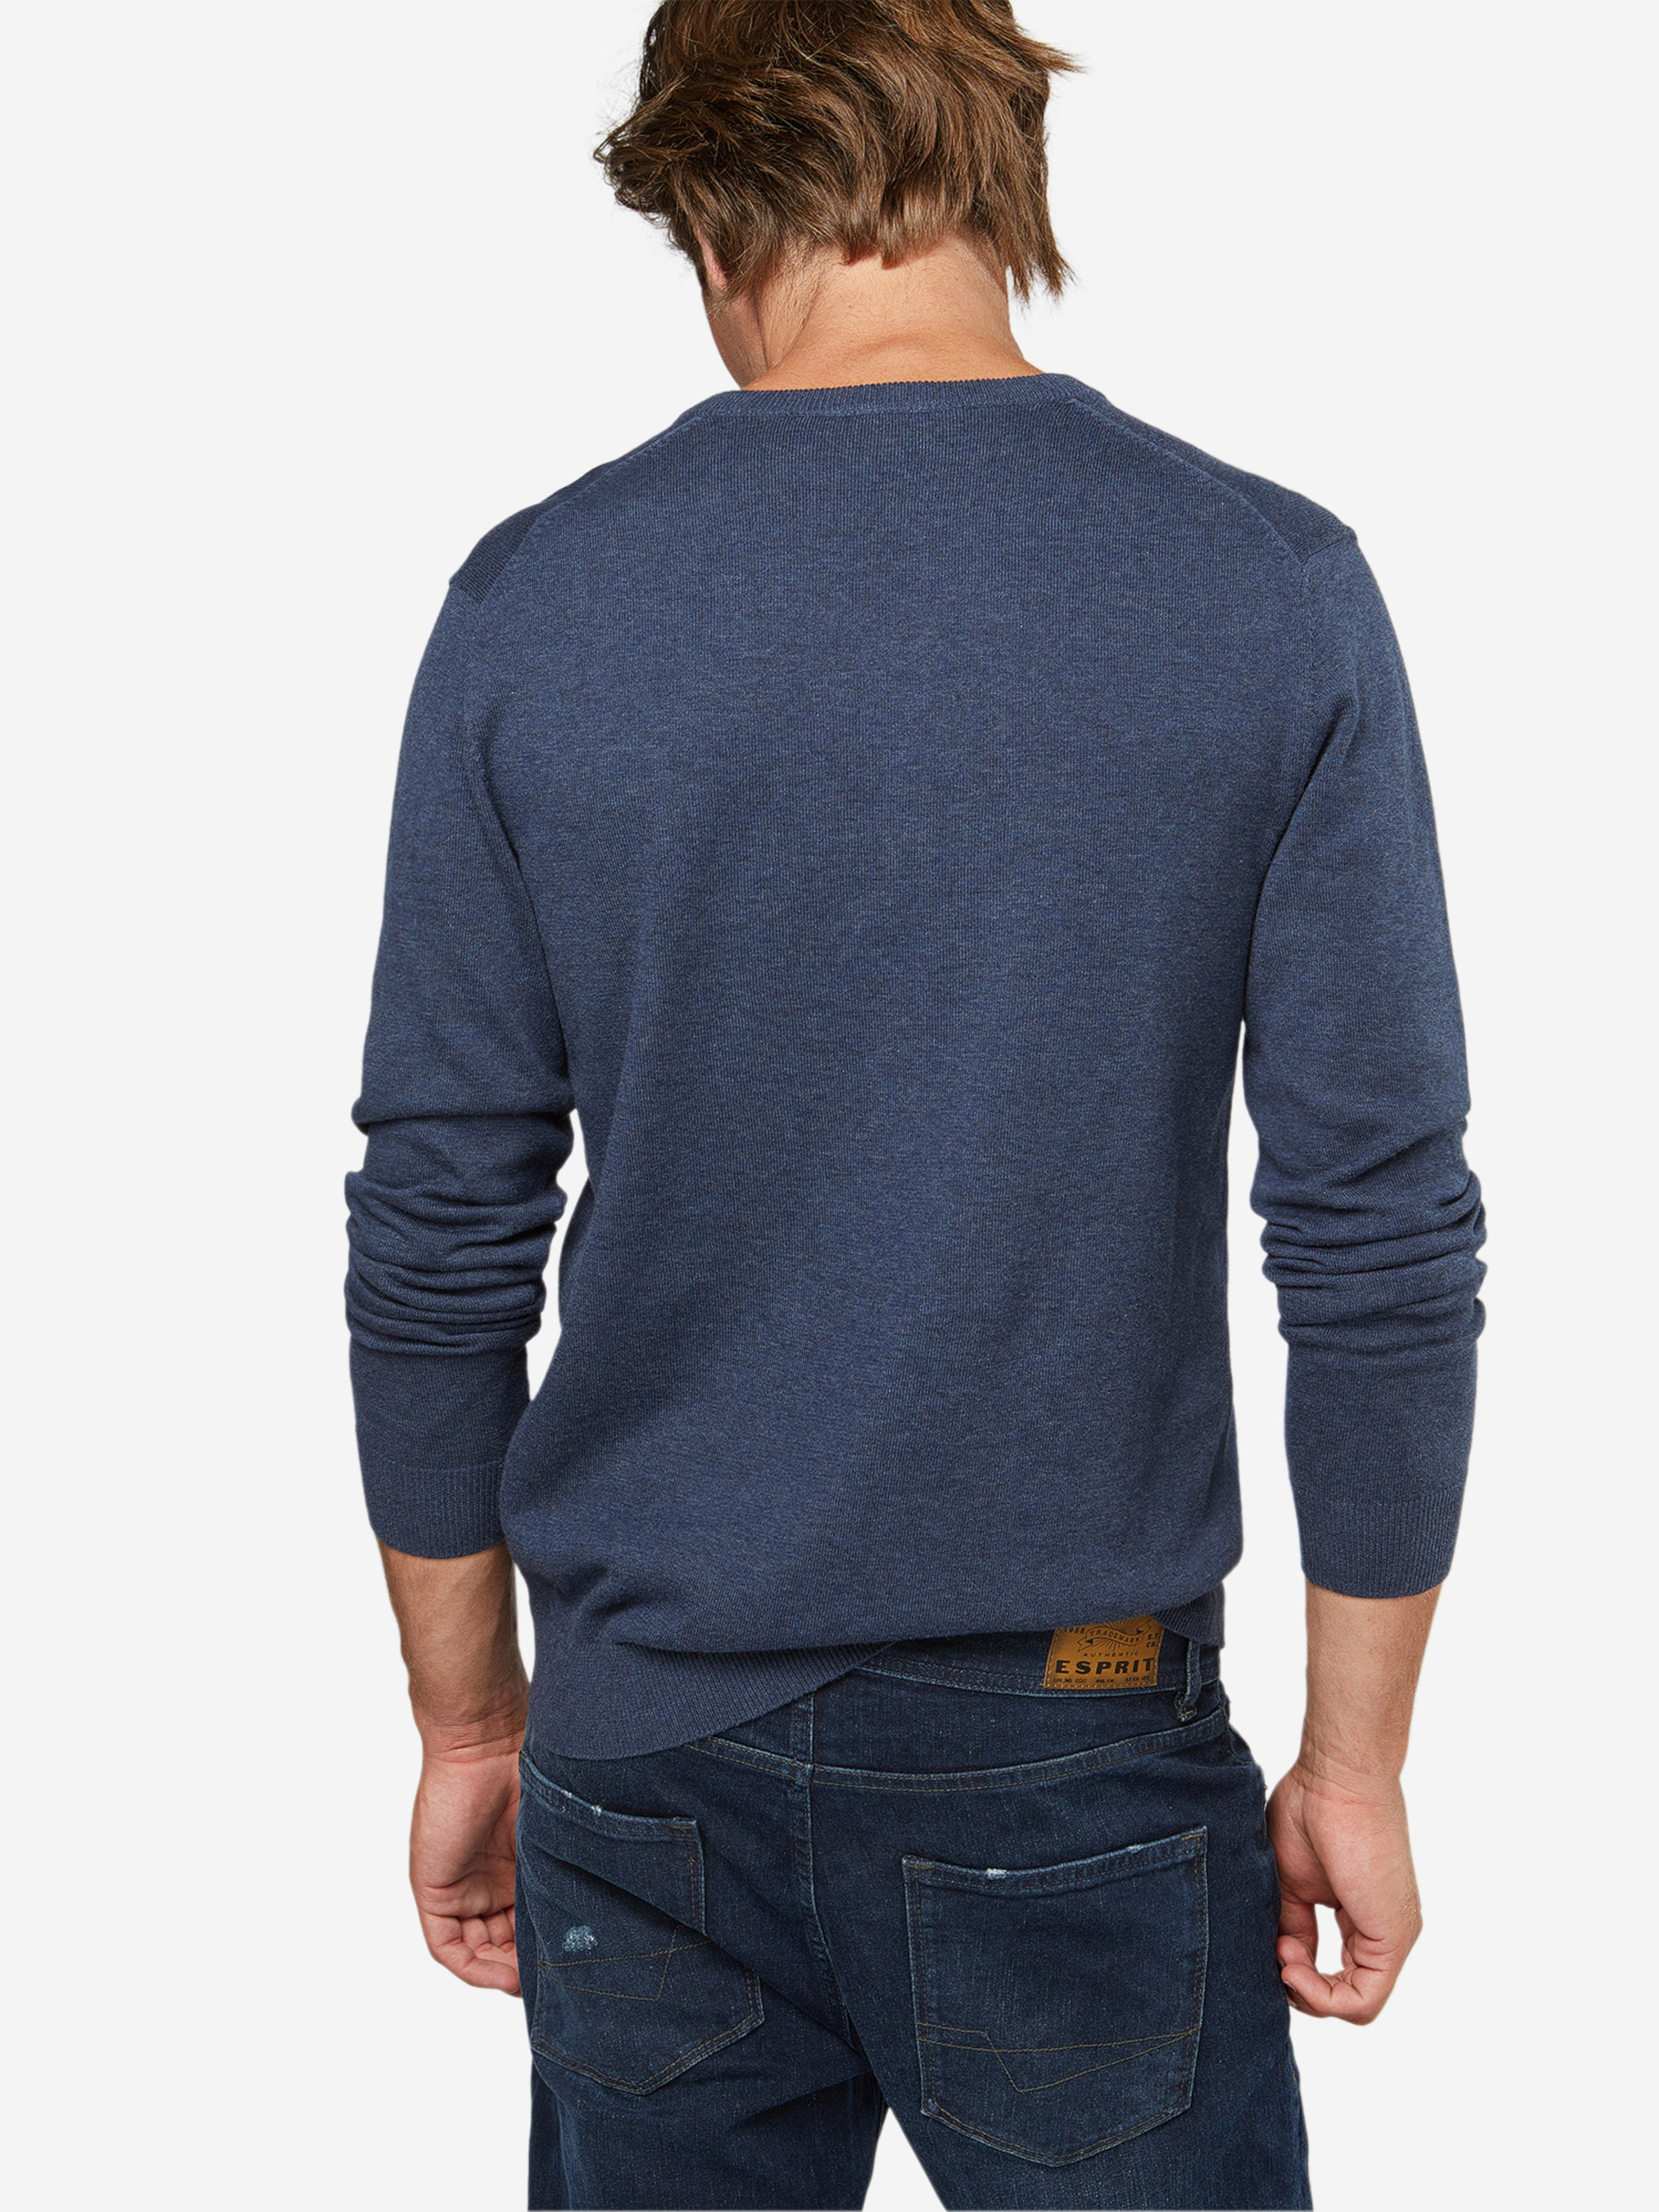 Pull En over 'basic Co Esprit V Marine nk' JculK53FT1